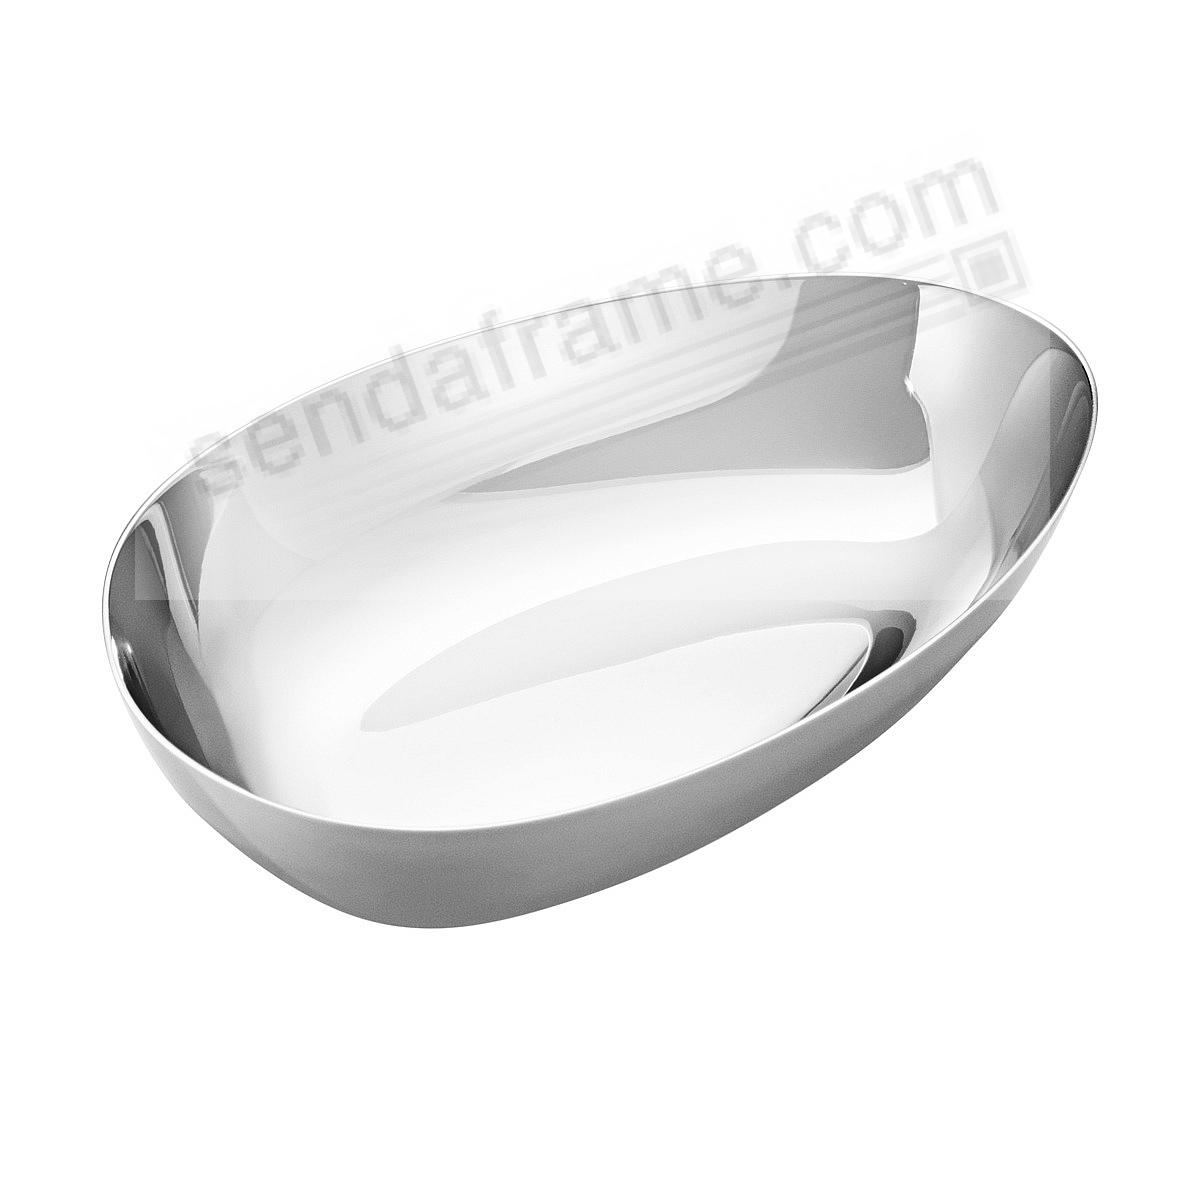 The Original SKY Bowl -Small- Stainless Steel by Georg Jensen®